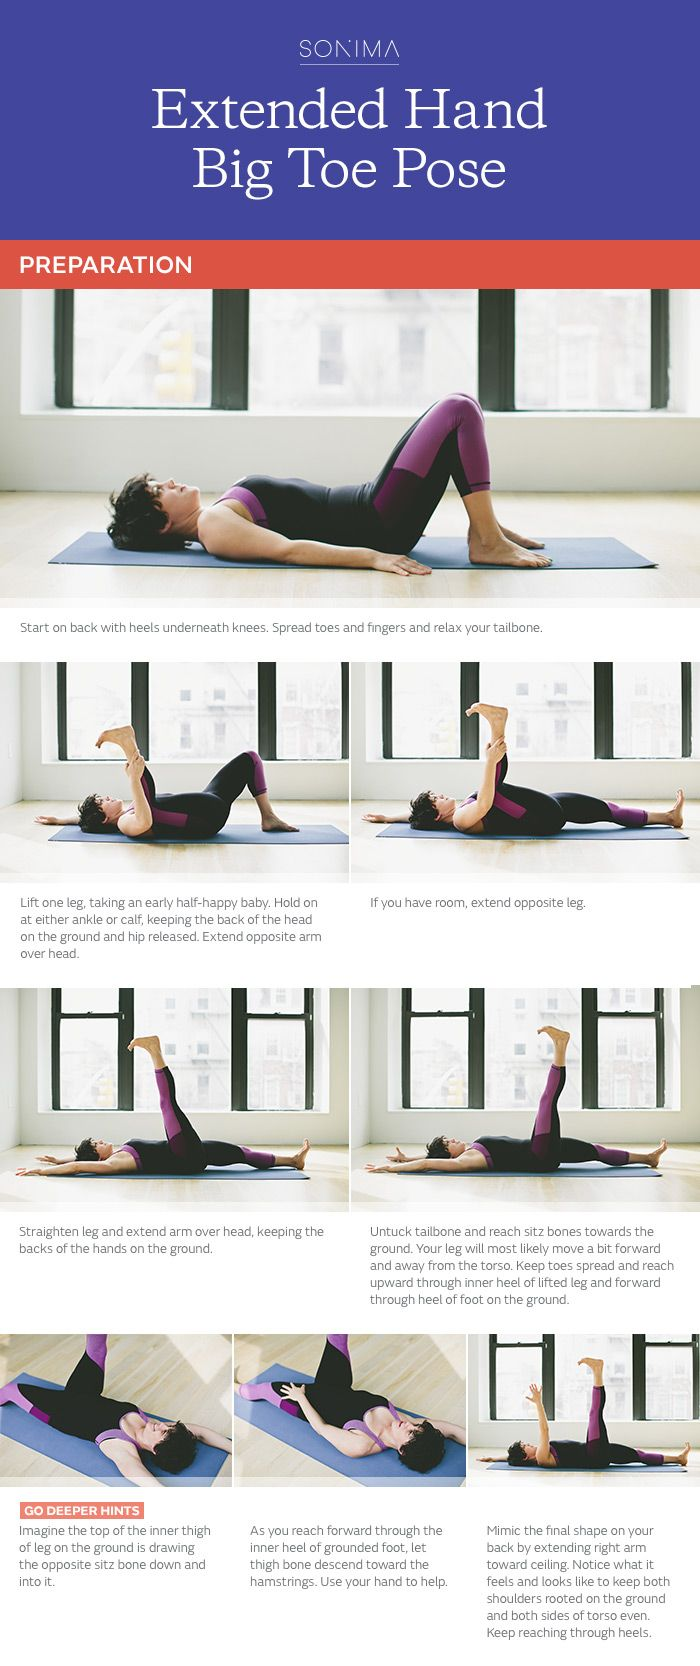 Building the Foundation for Extended Hand Big Toe Pose